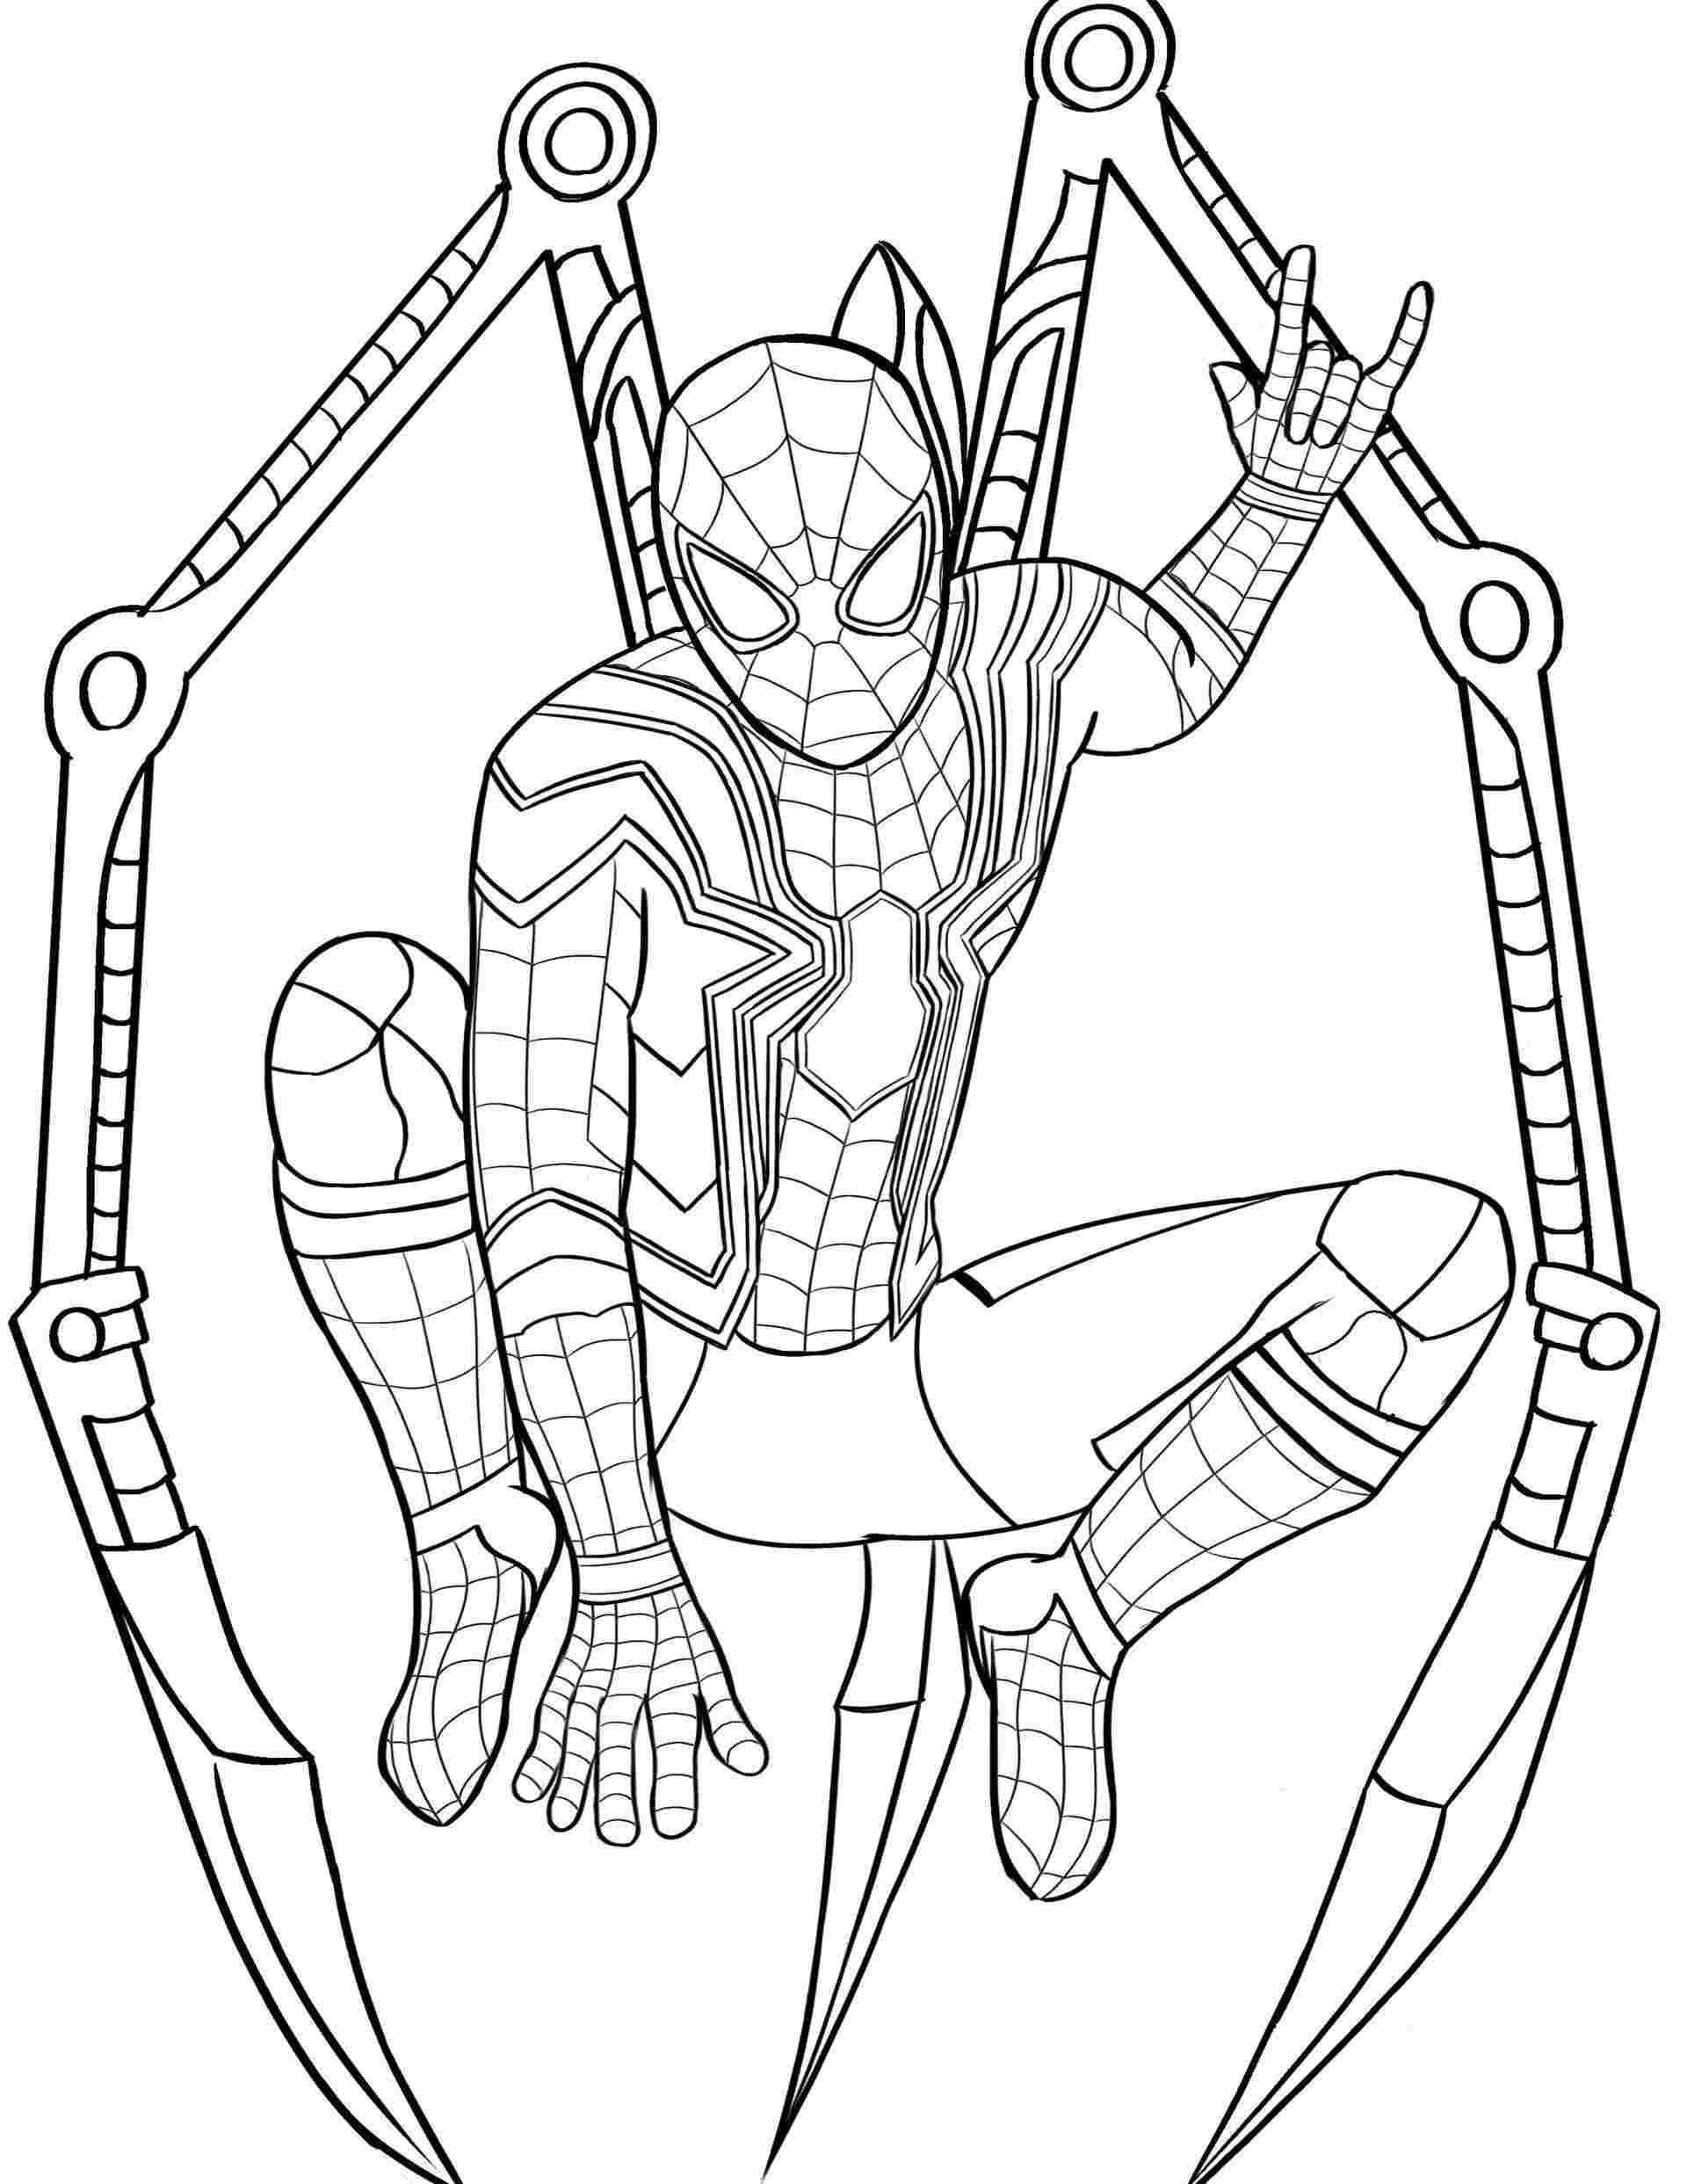 Lego Spiderman Coloring Pages Spider Man Far From Home Printable Coloring Page 23 Elegant In 2020 Avengers Coloring Pages Spider Coloring Page Spiderman Coloring